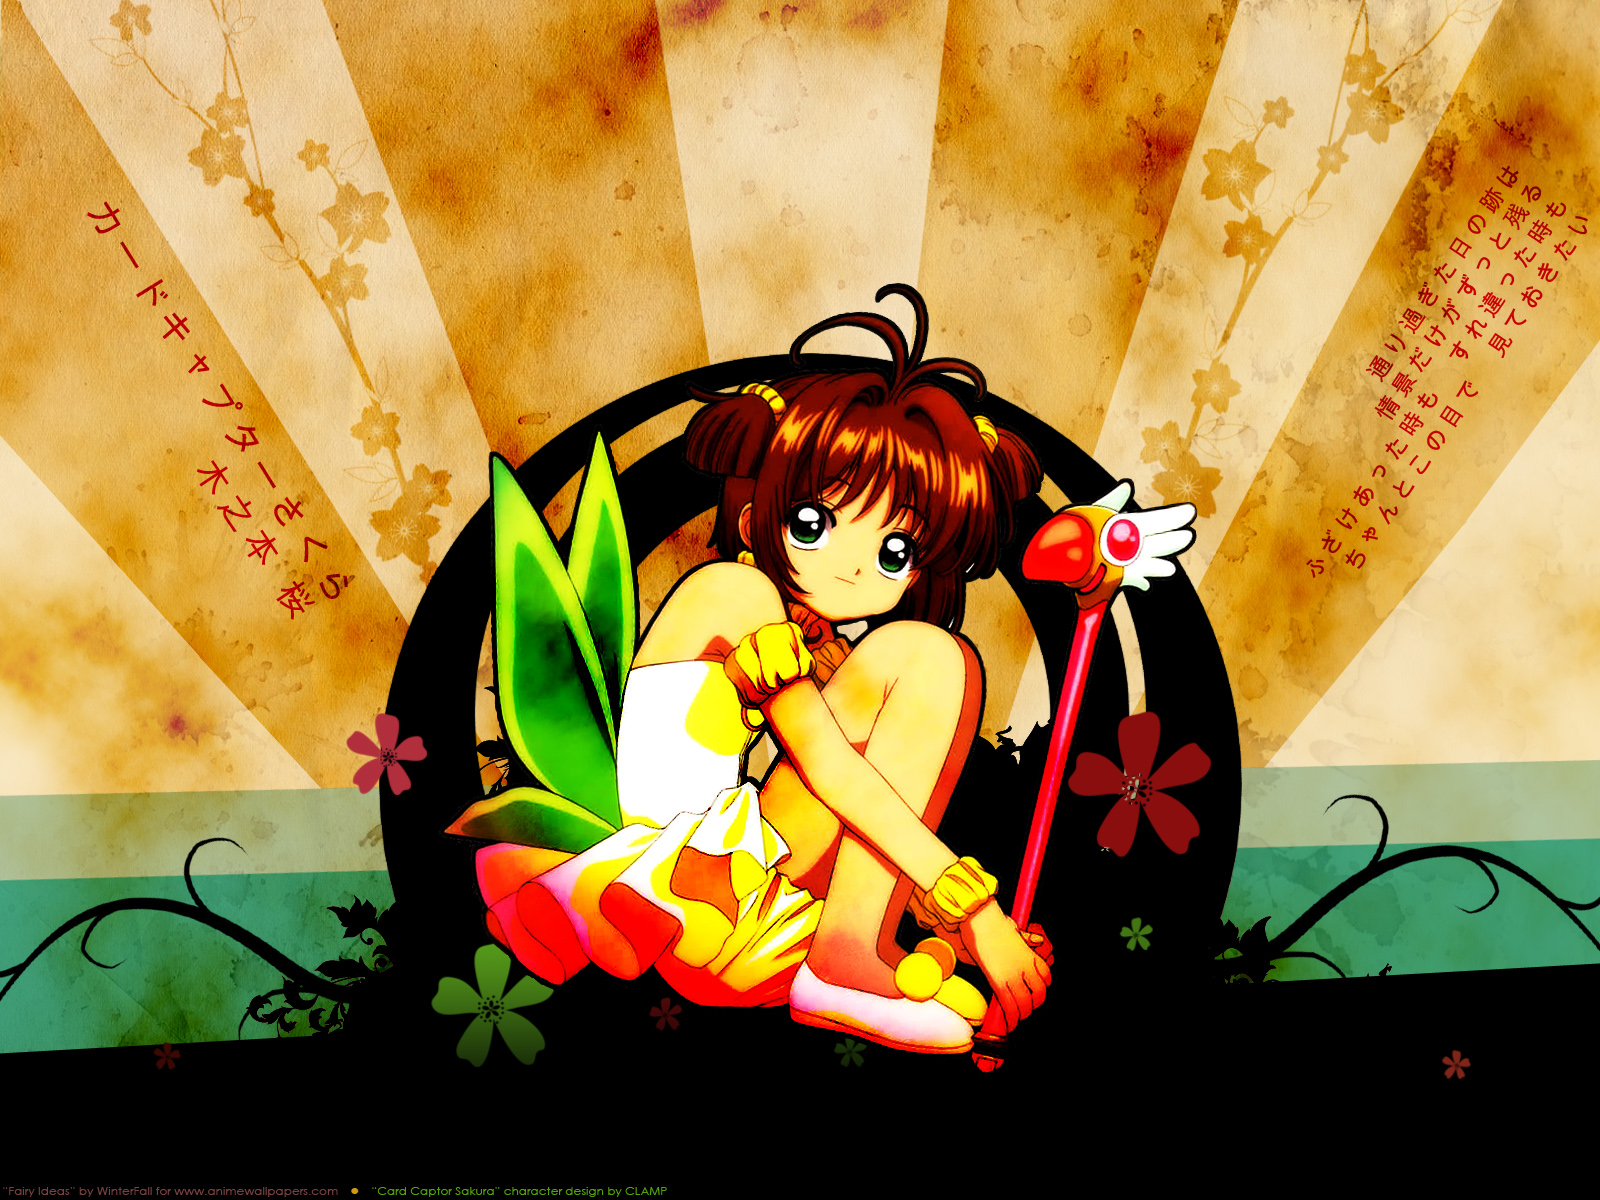 Card Captor Sakura Anime Wallpaper # 115